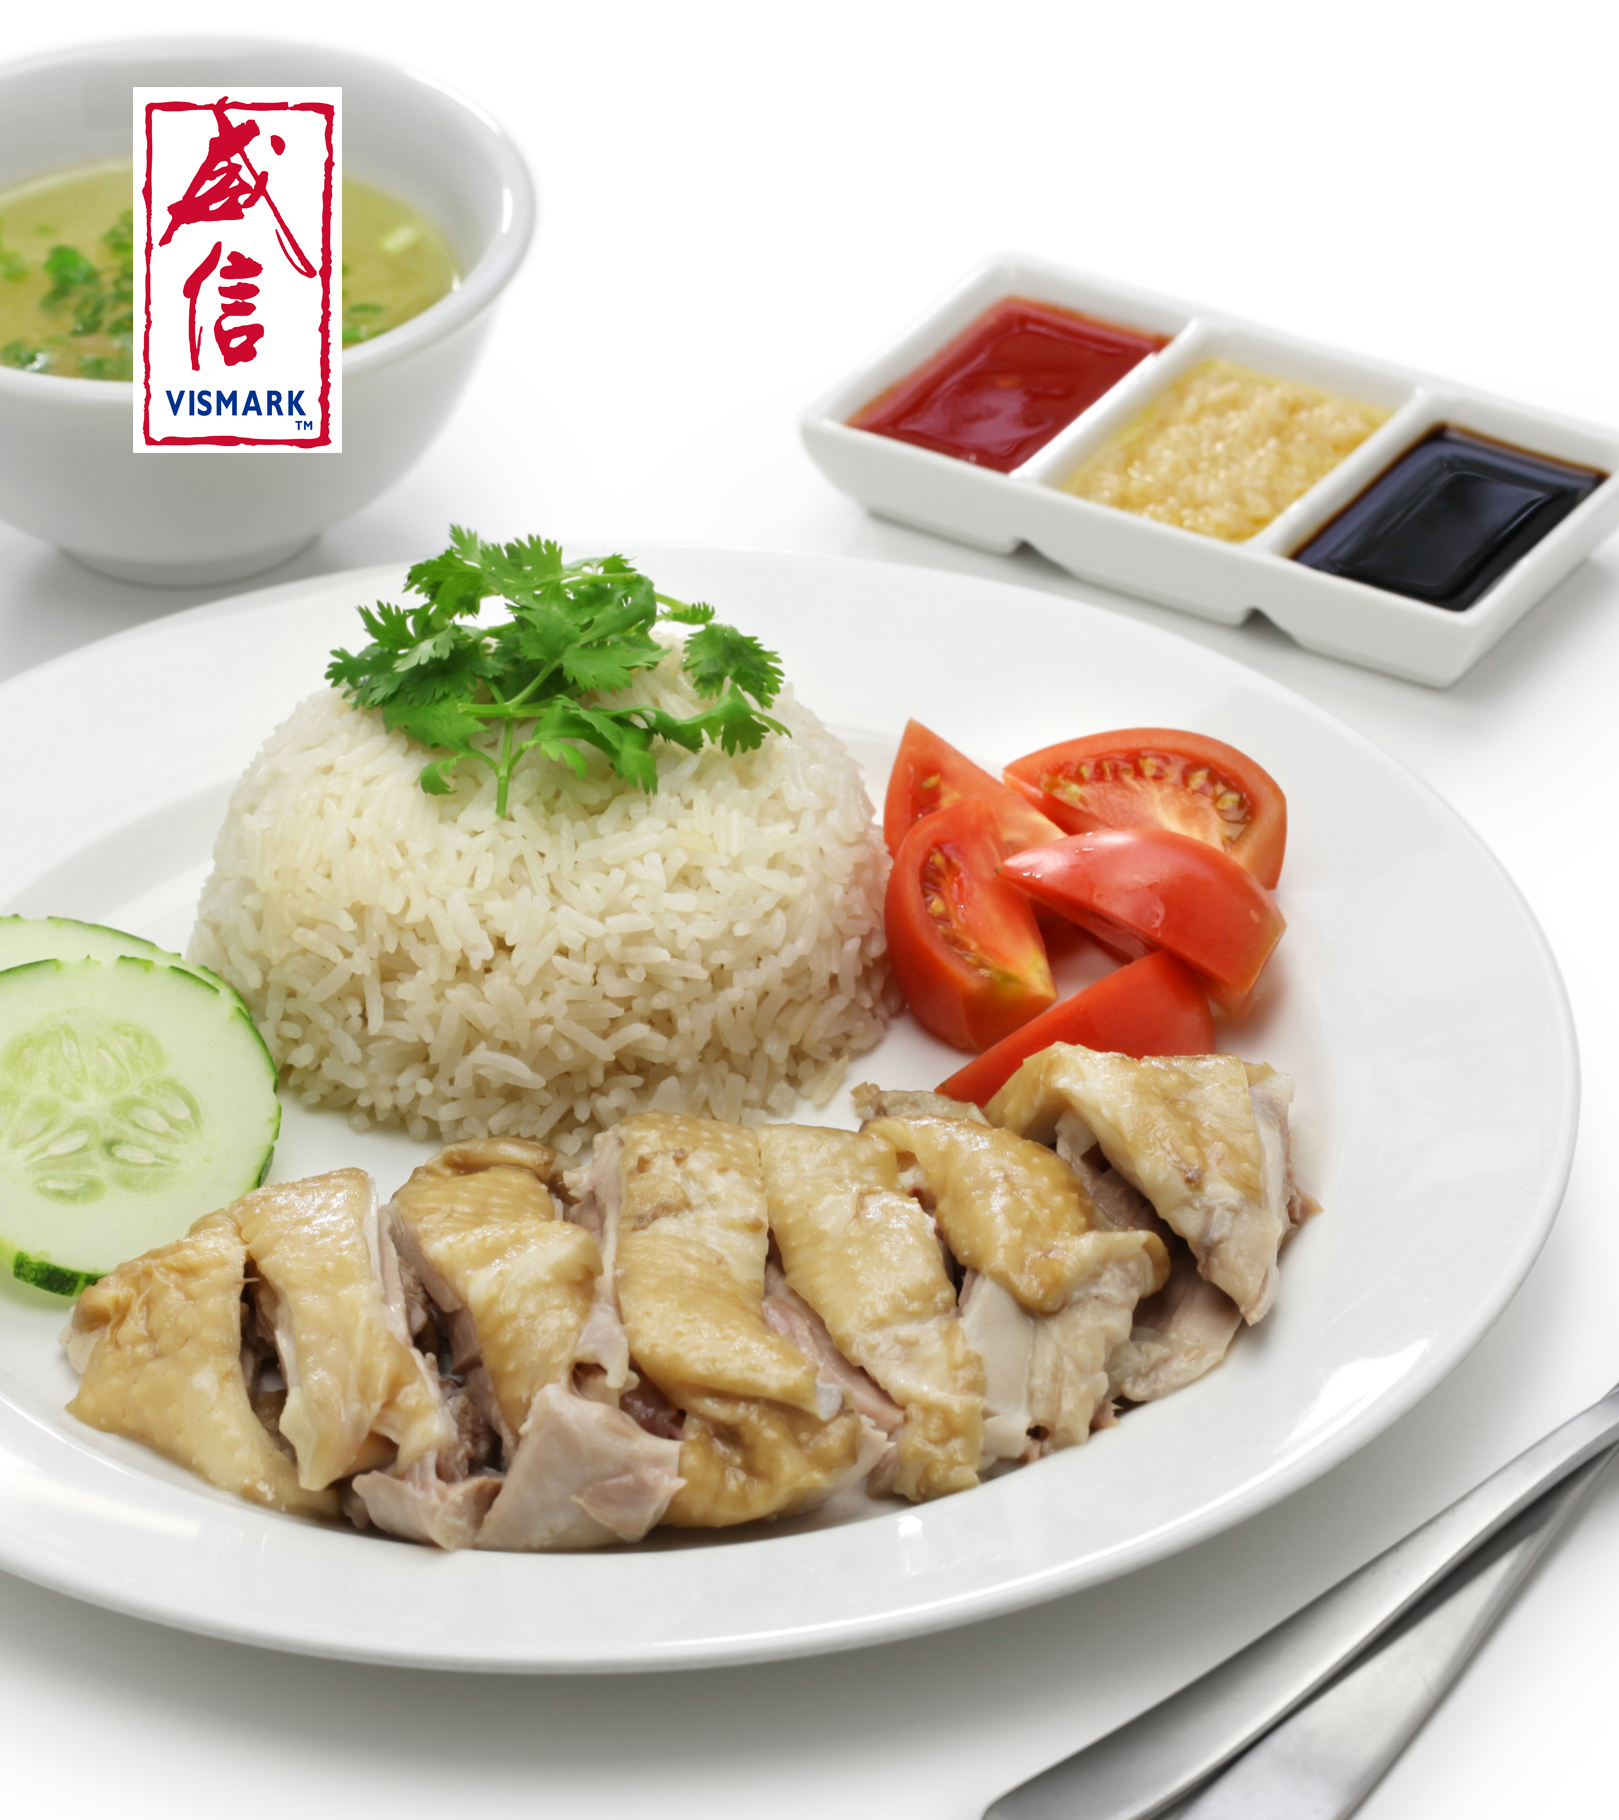 http://vismark.com.sg/wp-content/uploads/2019/06/Website-Chicken-Rice-3-for-Quote-Me-Form.jpg